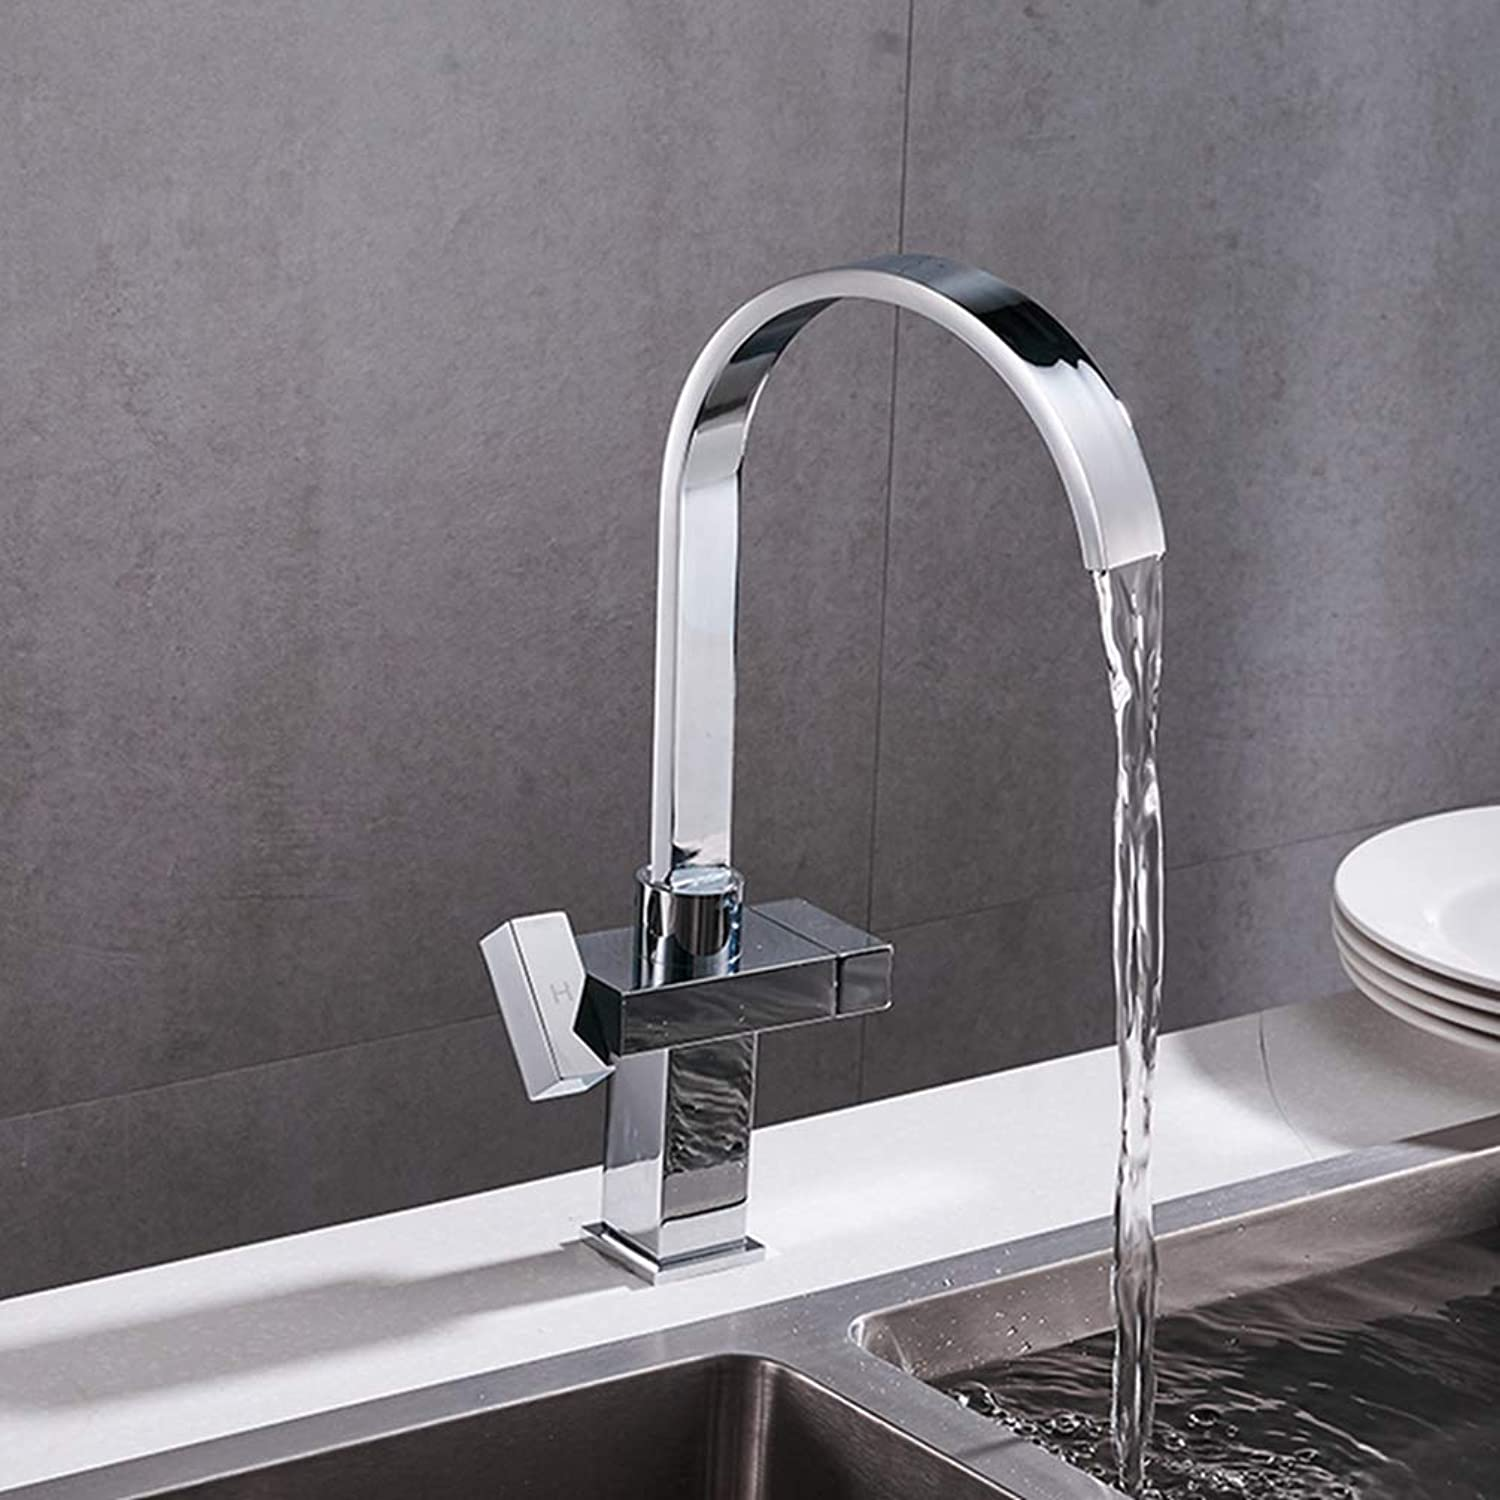 FZHLR Modern Simple Waterfall Kitchen Faucet Square Dual Handle Stainless Steel Basin Faucets 360 Swivel Chrome Mixer Sink Tap